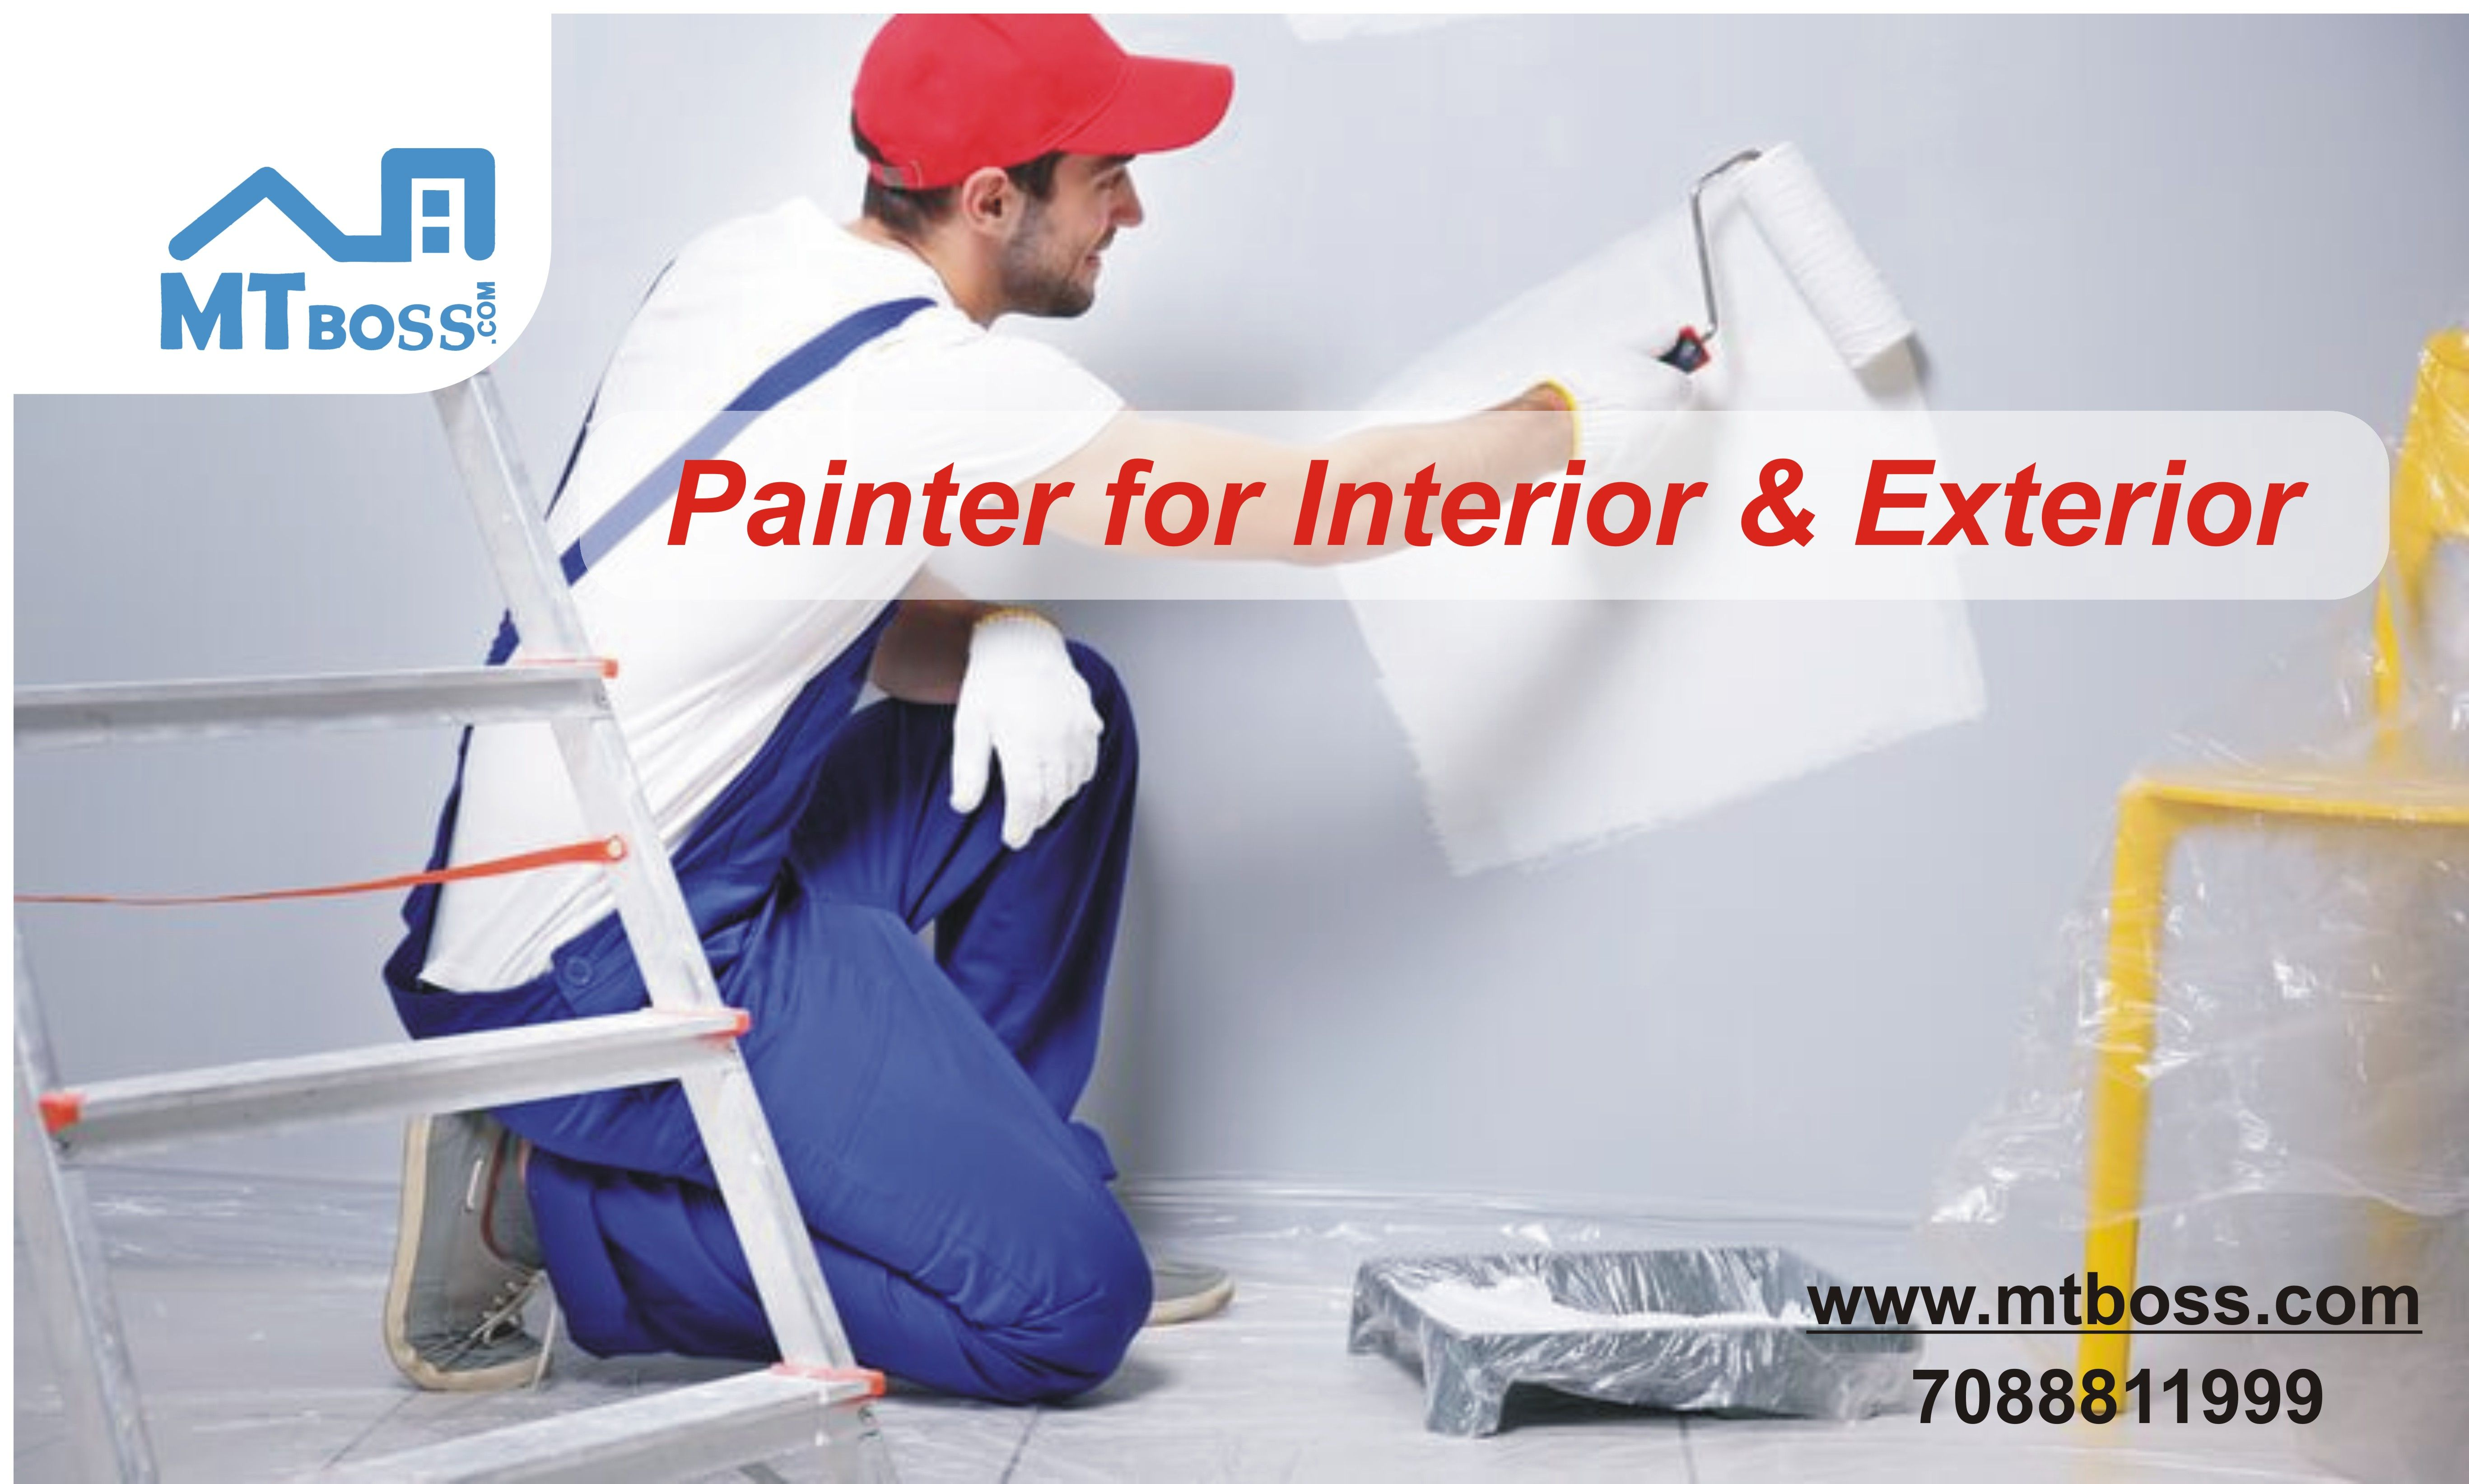 Painting Contractor Painting Contractors Painting Services Construction Company